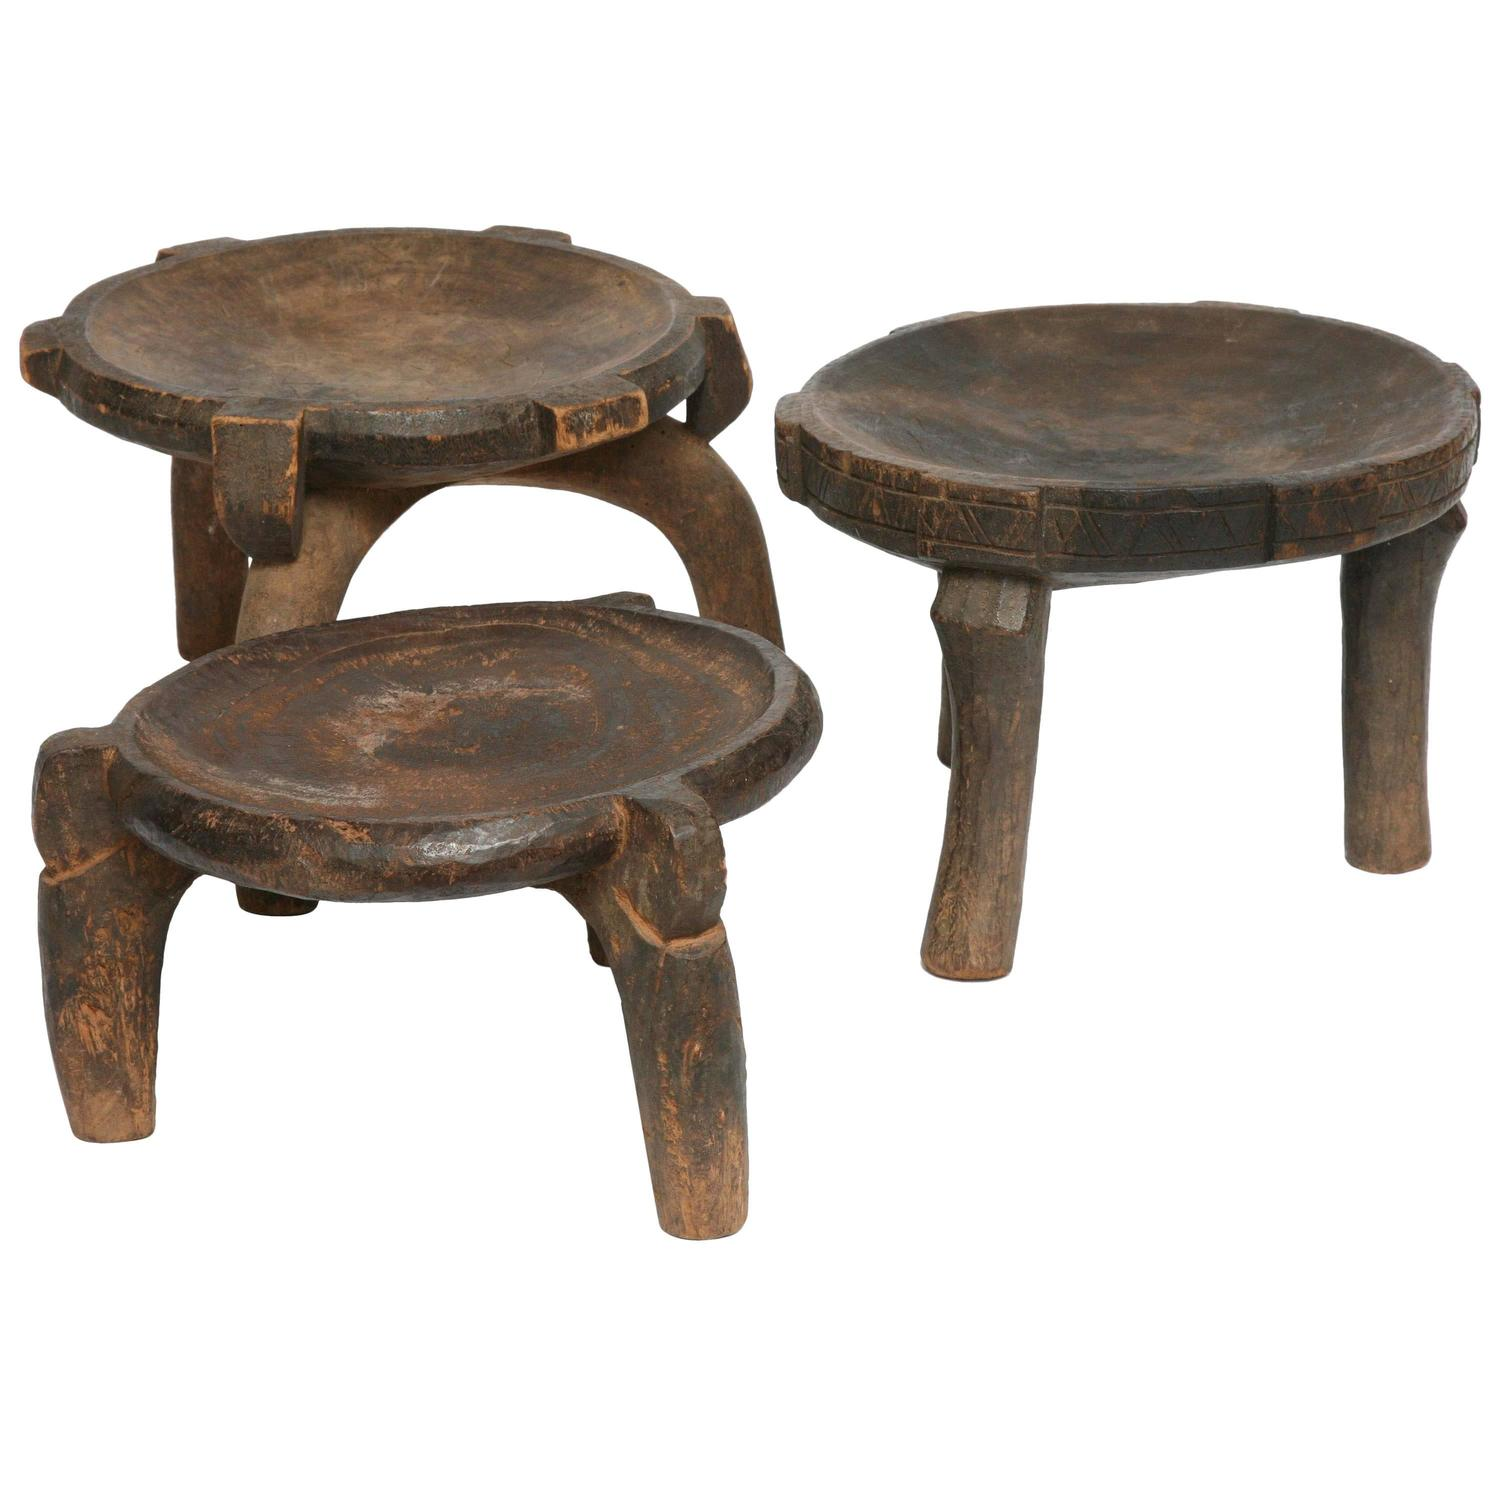 chair stool difference chairul tanjung 3 african stools antique ethiopian handcarved with